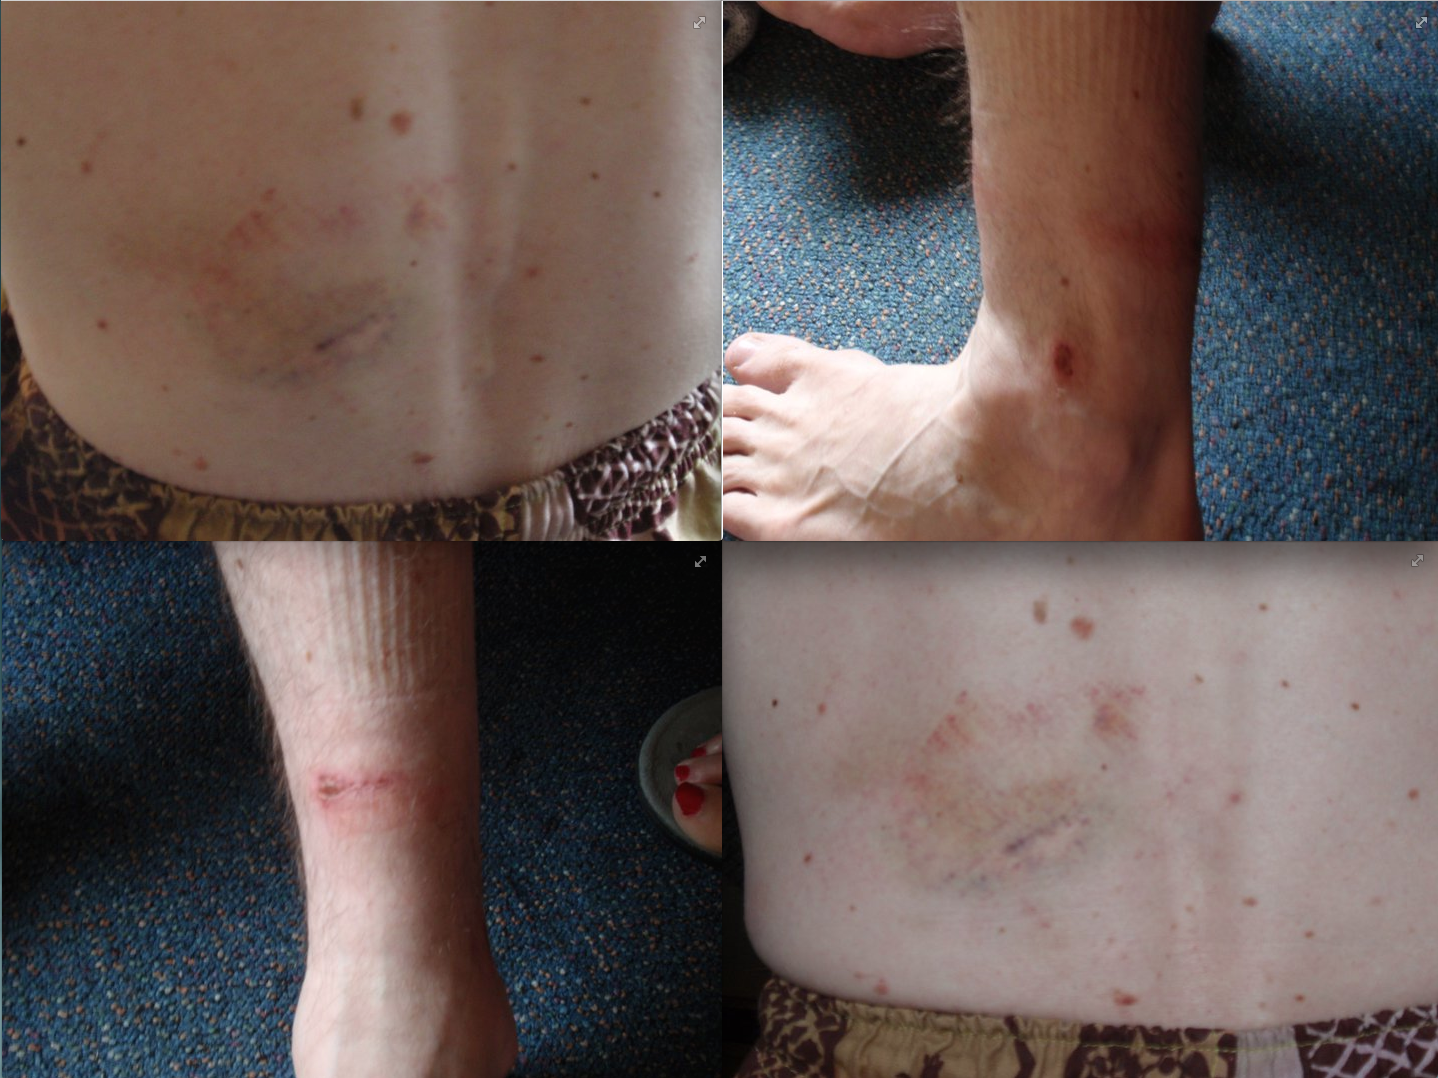 Injuries sustained during an alleged prolonged assault by police officers whilst the victim was in police custody.